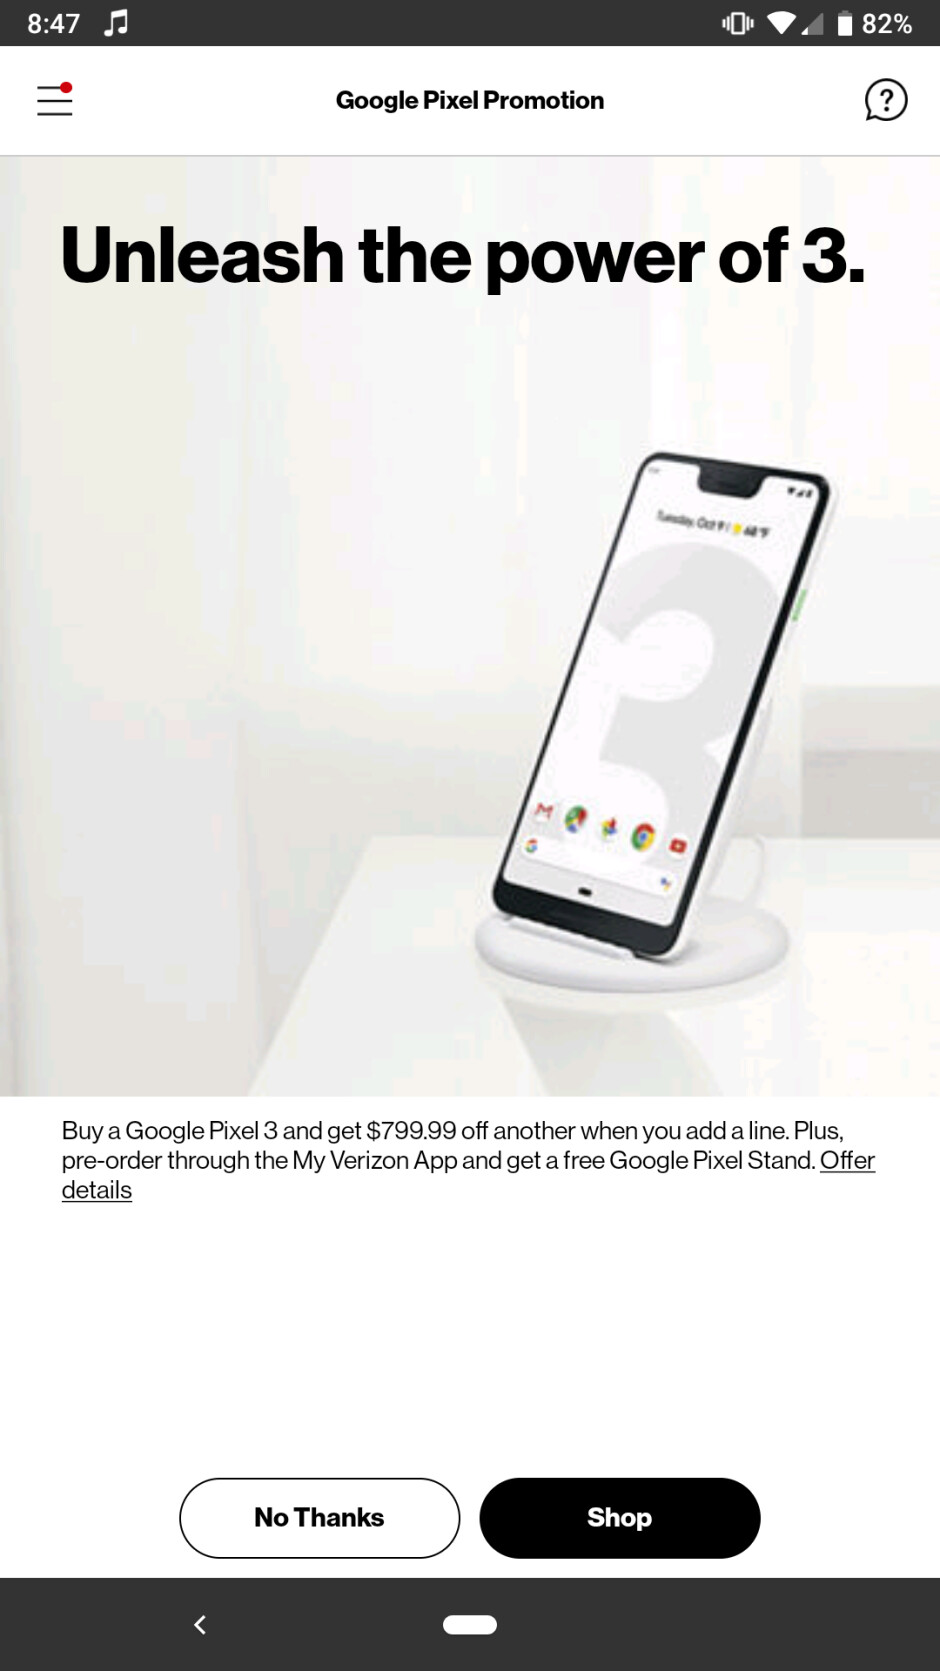 Get a free Pixel 3 from Verizon in a BOGO deal that adds the Pixel Stand charger as one-day offer